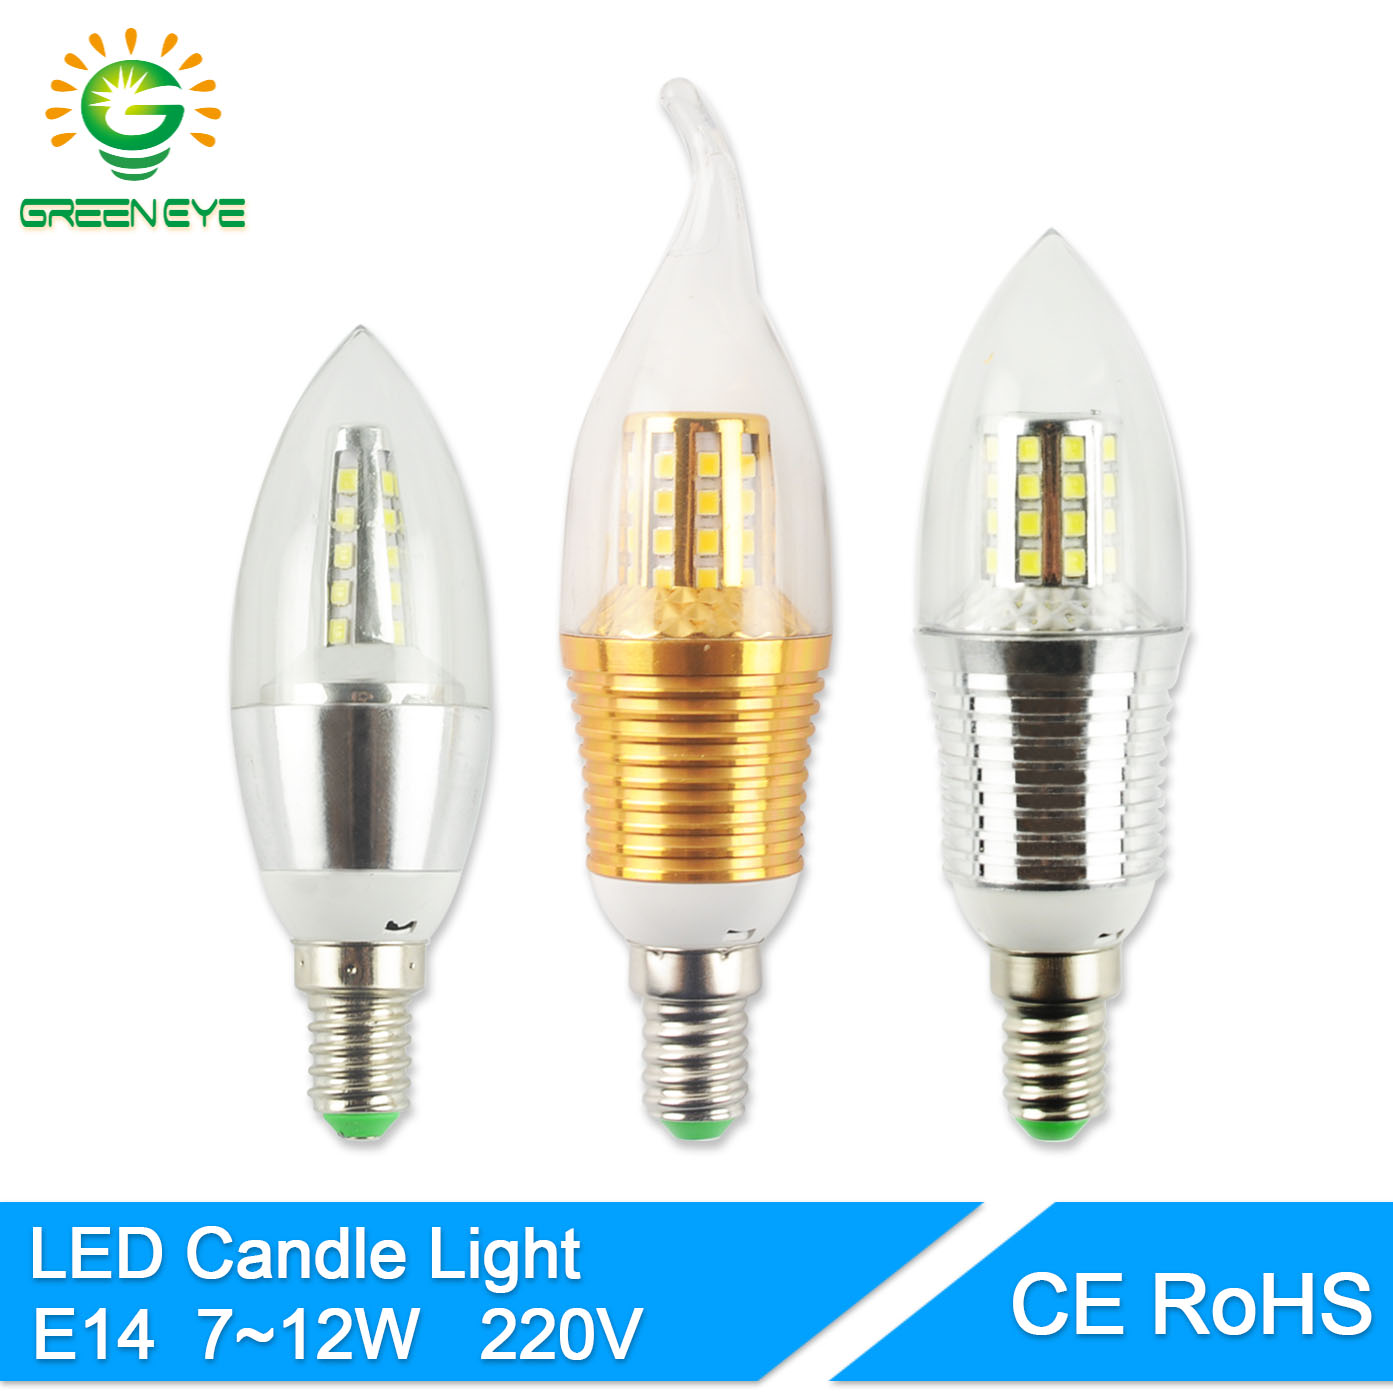 GreenEye LED Bulb E14 220V Golden Silver Aluminum Candle Lamp Light 7W 9W 12W For Crystal Chandelier Antique Lampara Ampoule candle led bulb e14 9w 12w aluminum shell e14 led light lamp 220v golden silver cool warm white ampoule lampara led smd 2835